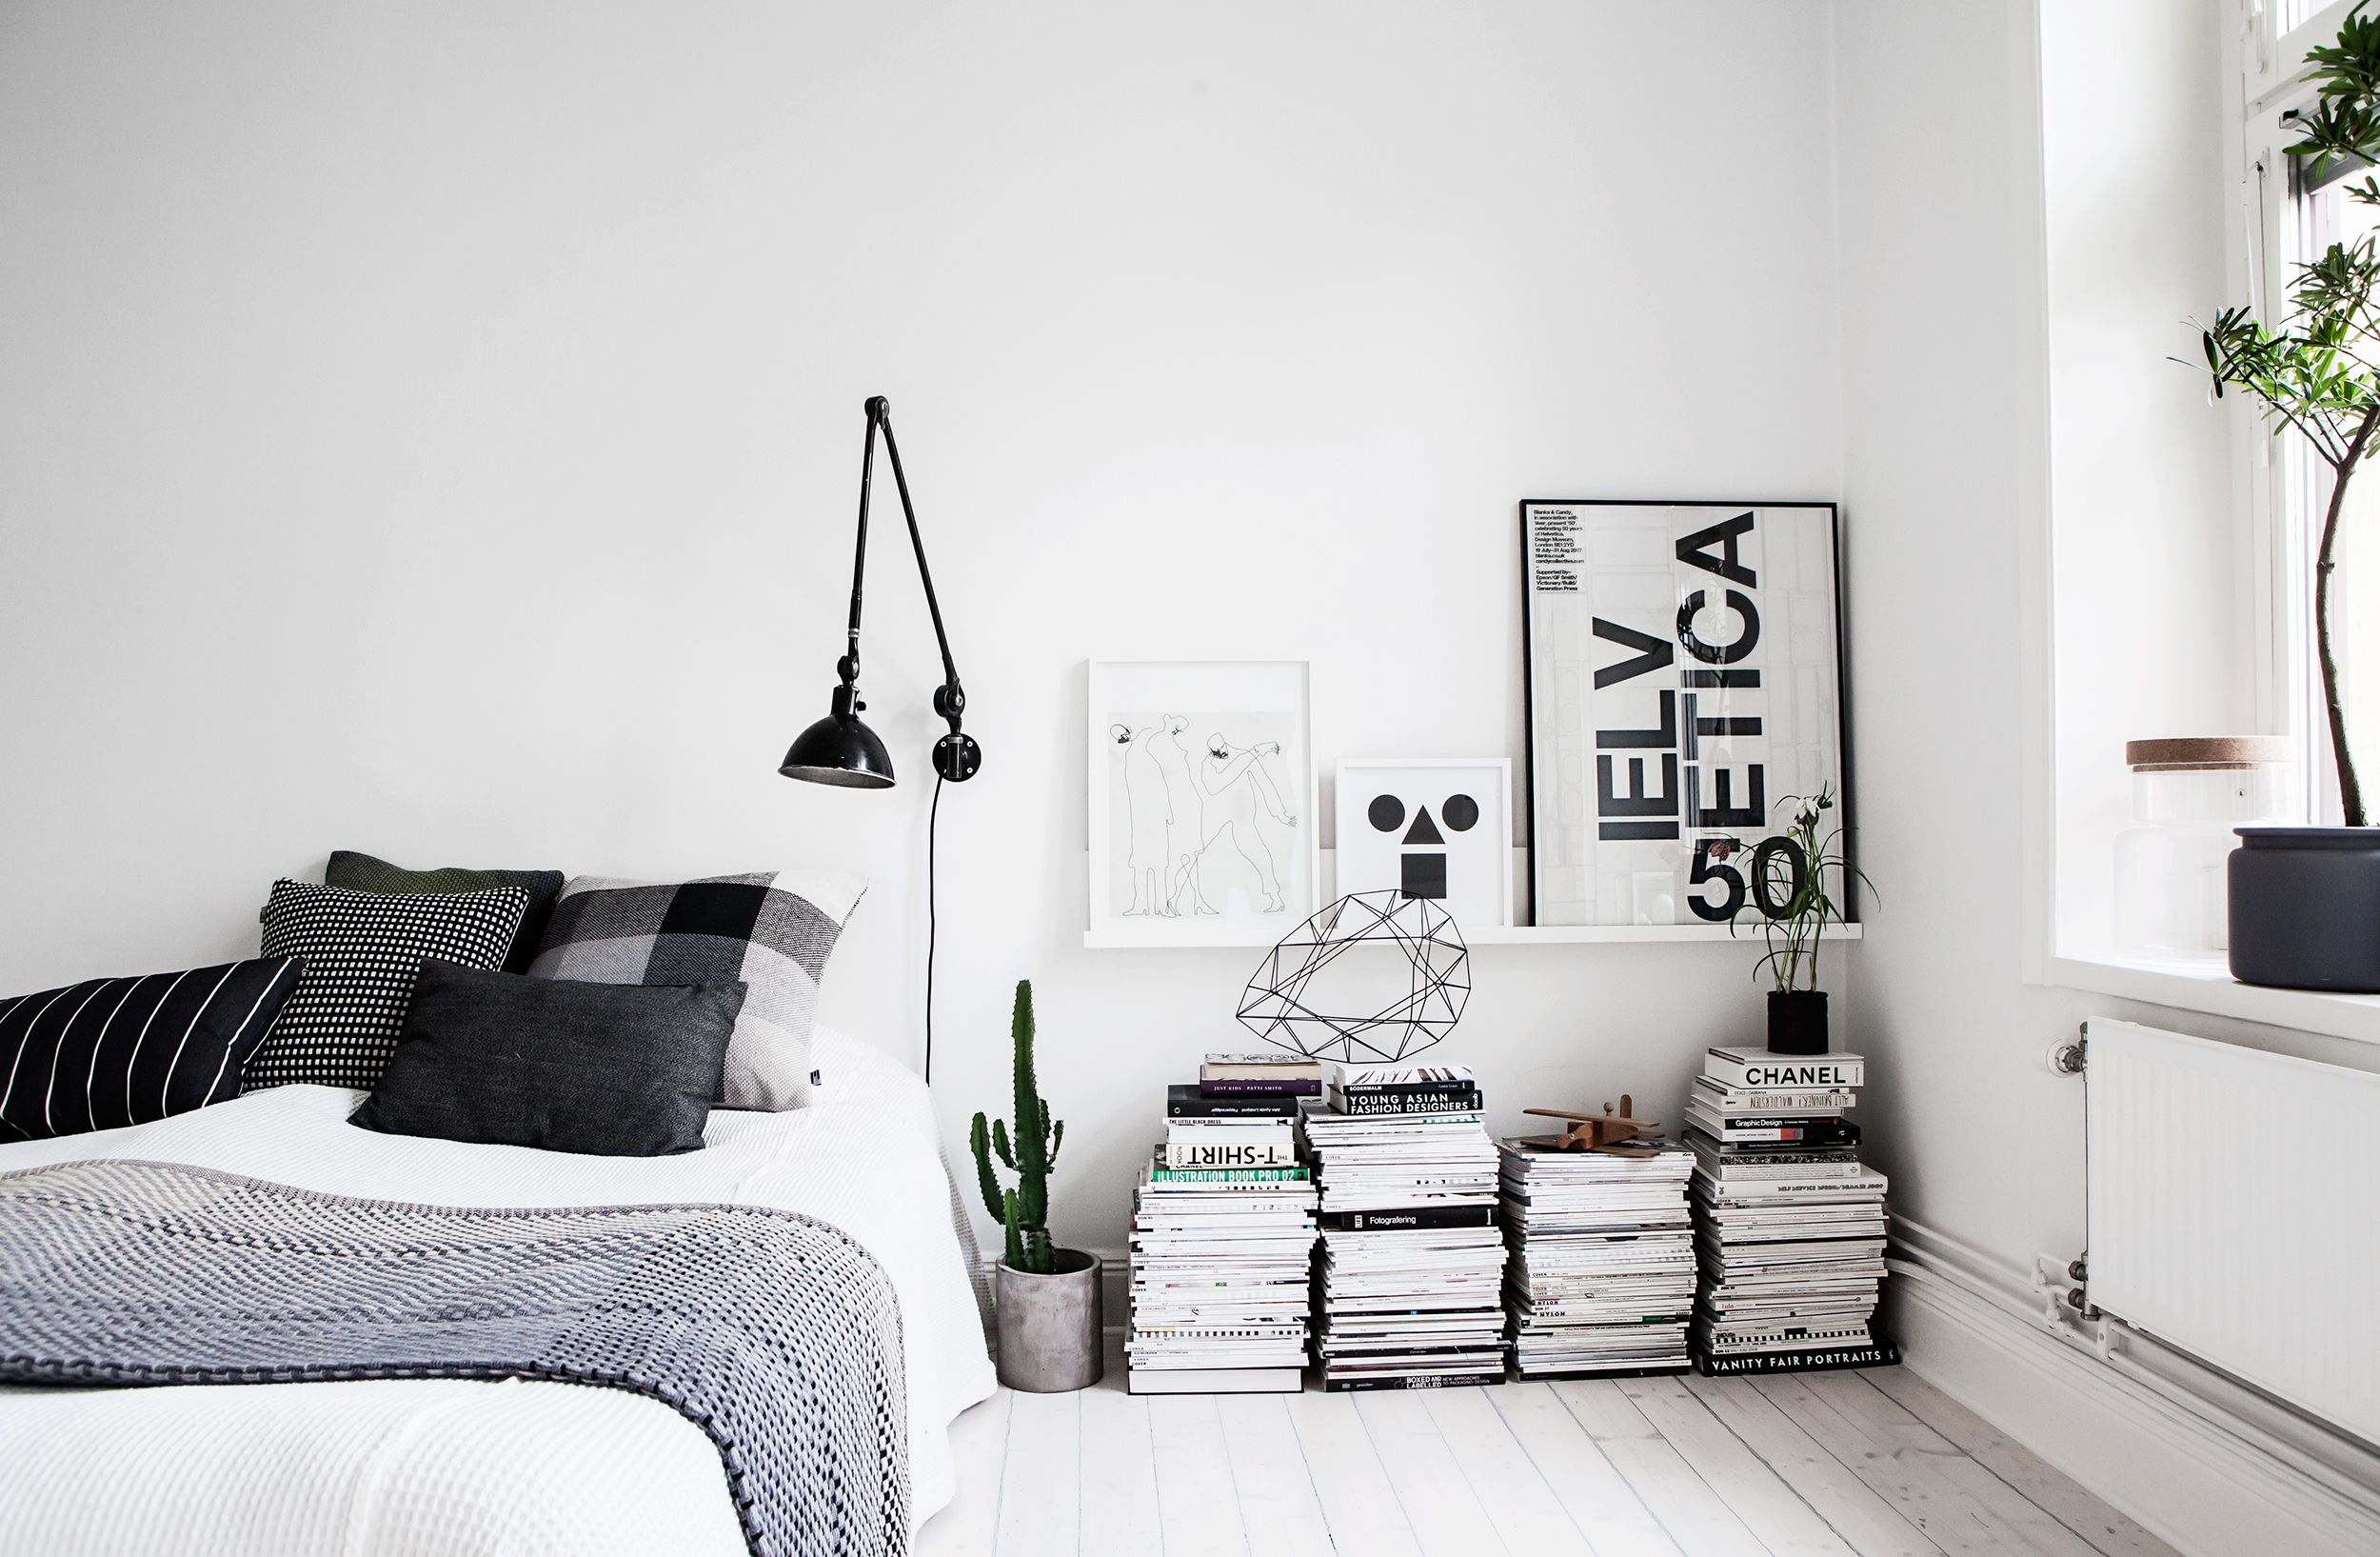 A bedroom with green and black furniture, framed prints and an. 38 Minimalist Bedroom Ideas And Tips Budget Friendly Minimalism